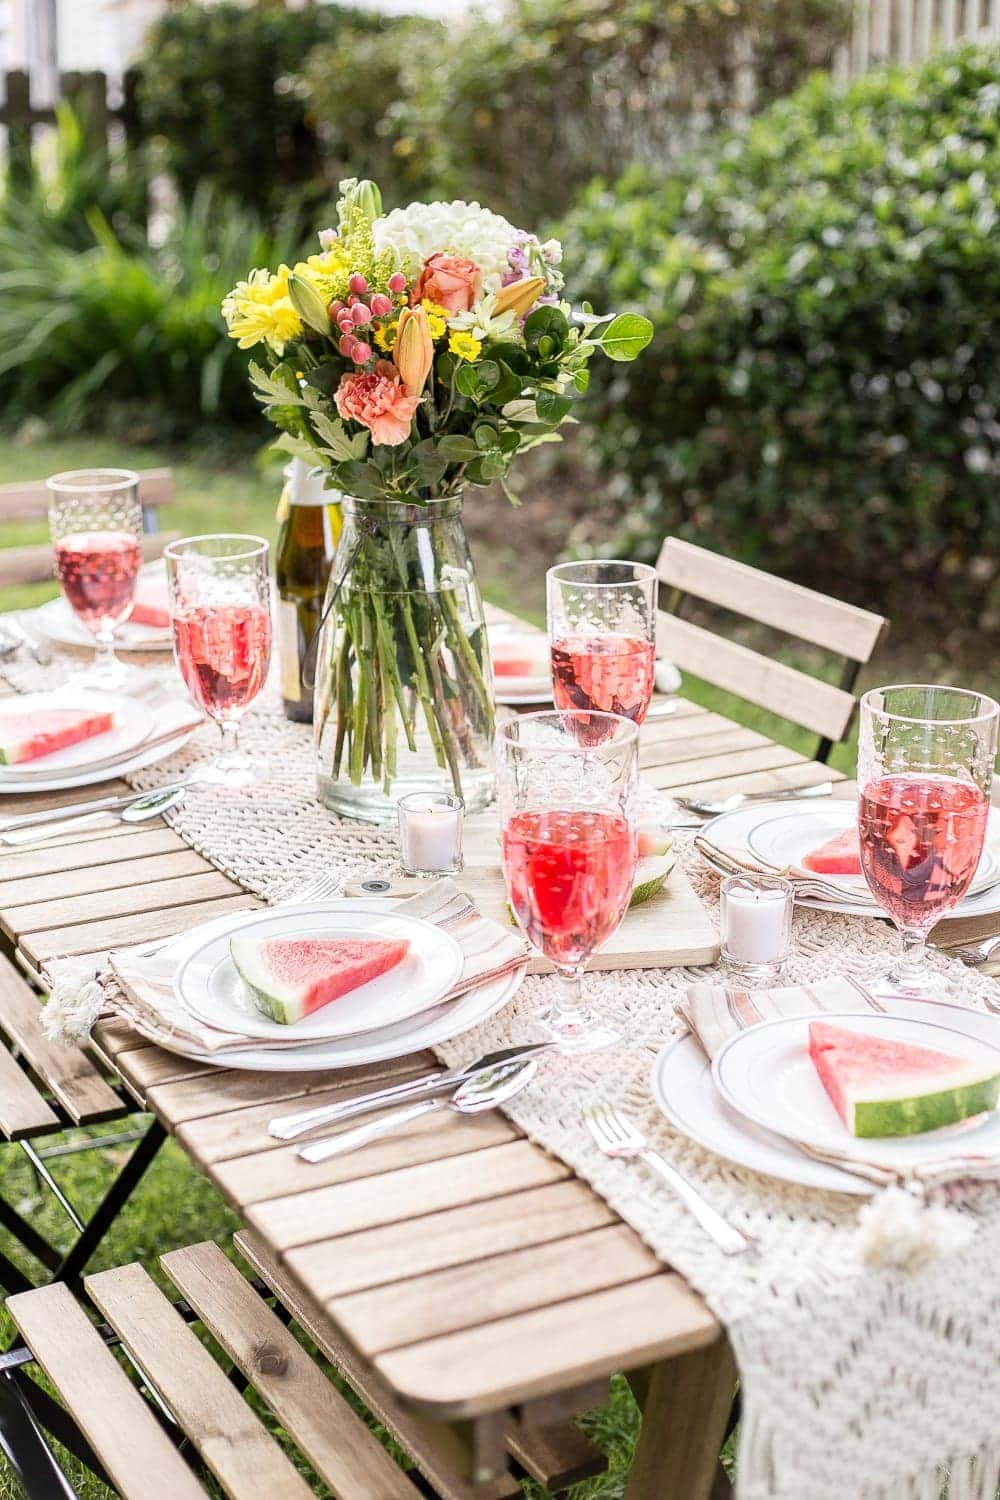 6 ways to perk up a backyard barbecue table that are beautiful, yet still practical and affordable. #cookout #barbecue #entertaining #backyard #cookoutdecor #cookouttable #barbecuetable #summerdecor #summertable #summertablescape #backyardbarbecue